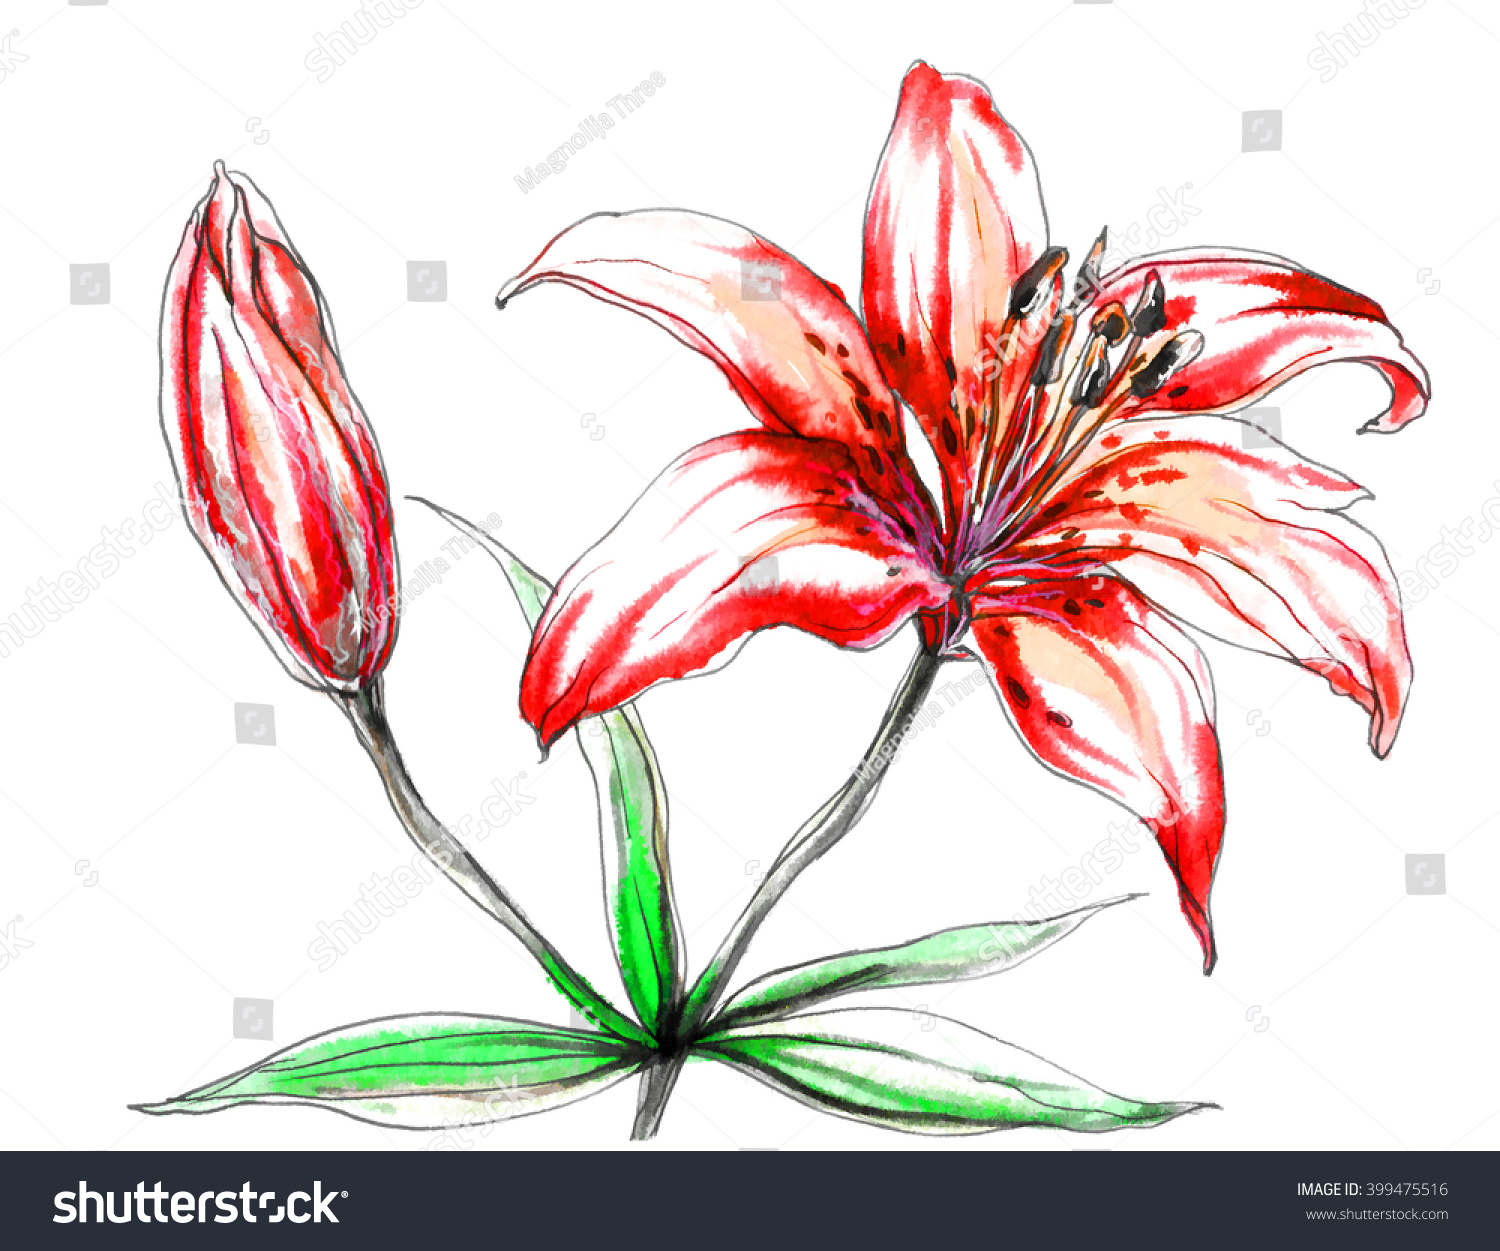 Red tiger lily flower blossom hand stock illustration 399475516 red tiger lily flower blossom hand drawn watercolor tropical flowers isolated on white background izmirmasajfo Images